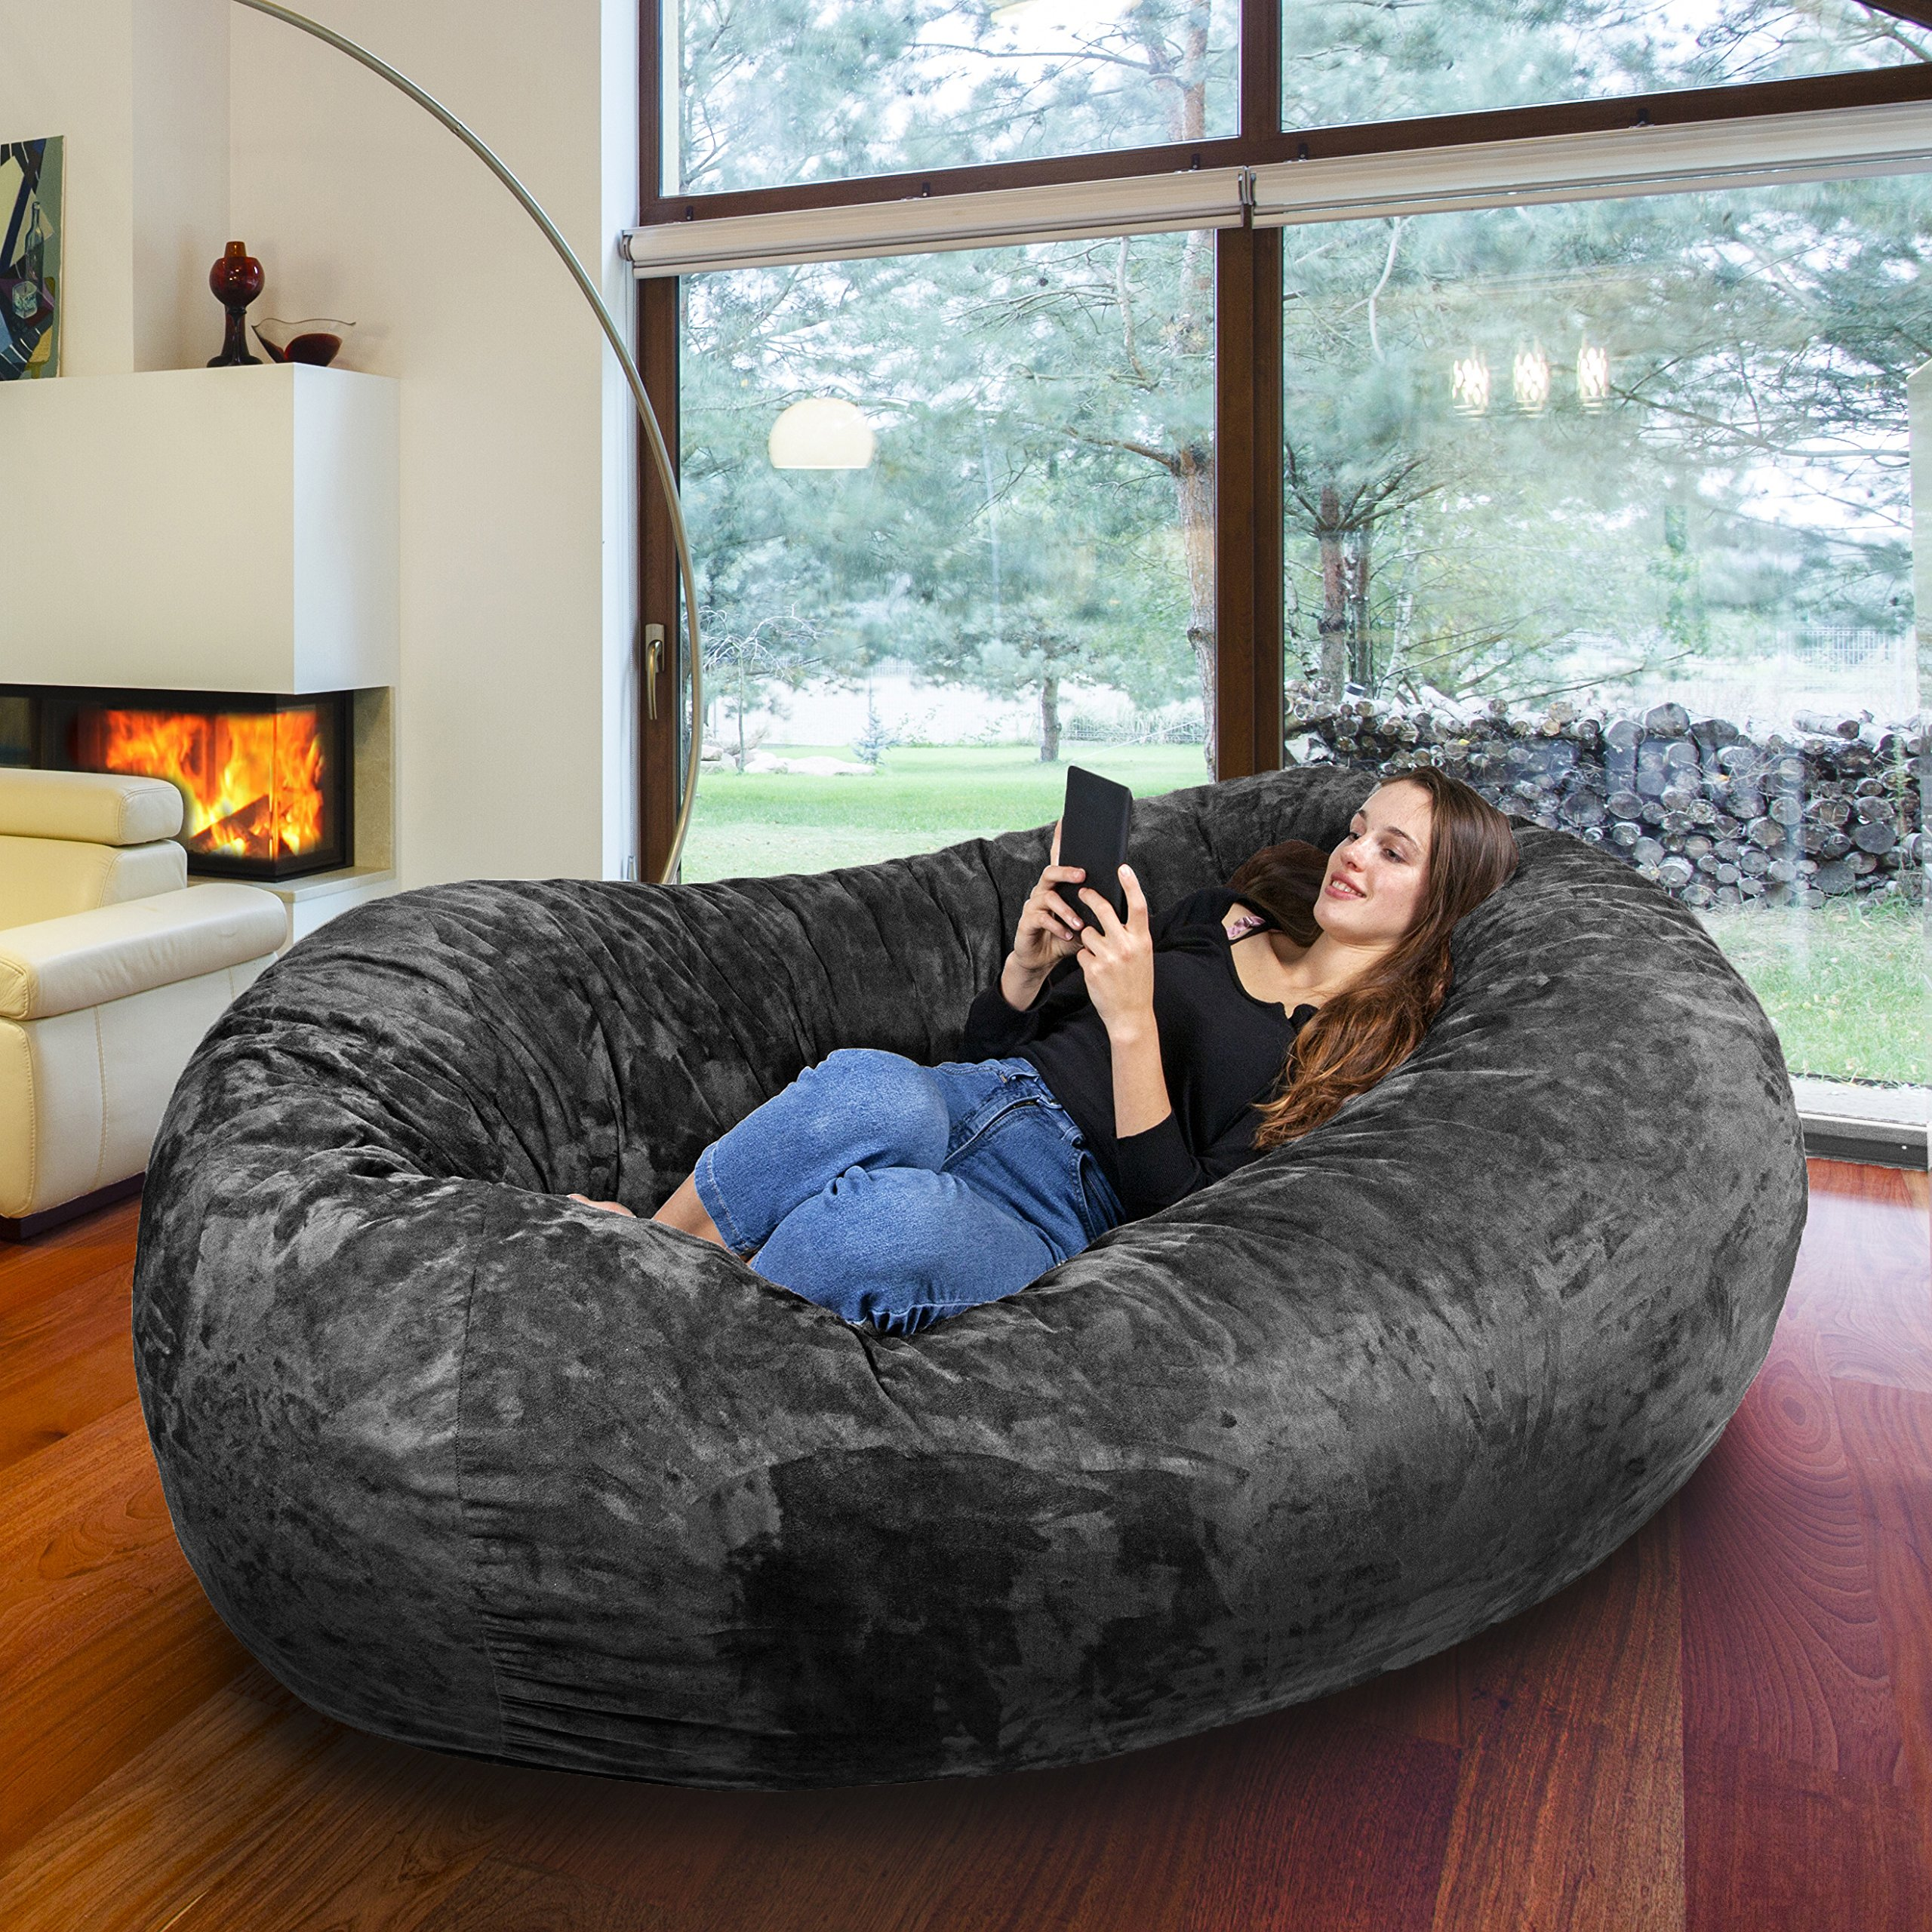 Gigantic Bean Bag Chair in Steel Grey with Memory Foam Filling and Machine Washable Velour Cover- Comfortable Cozy Lounge Sack to Chill - Huge Bed, Large Sofa, Cozy Lounger - Kids, Adults & Teens